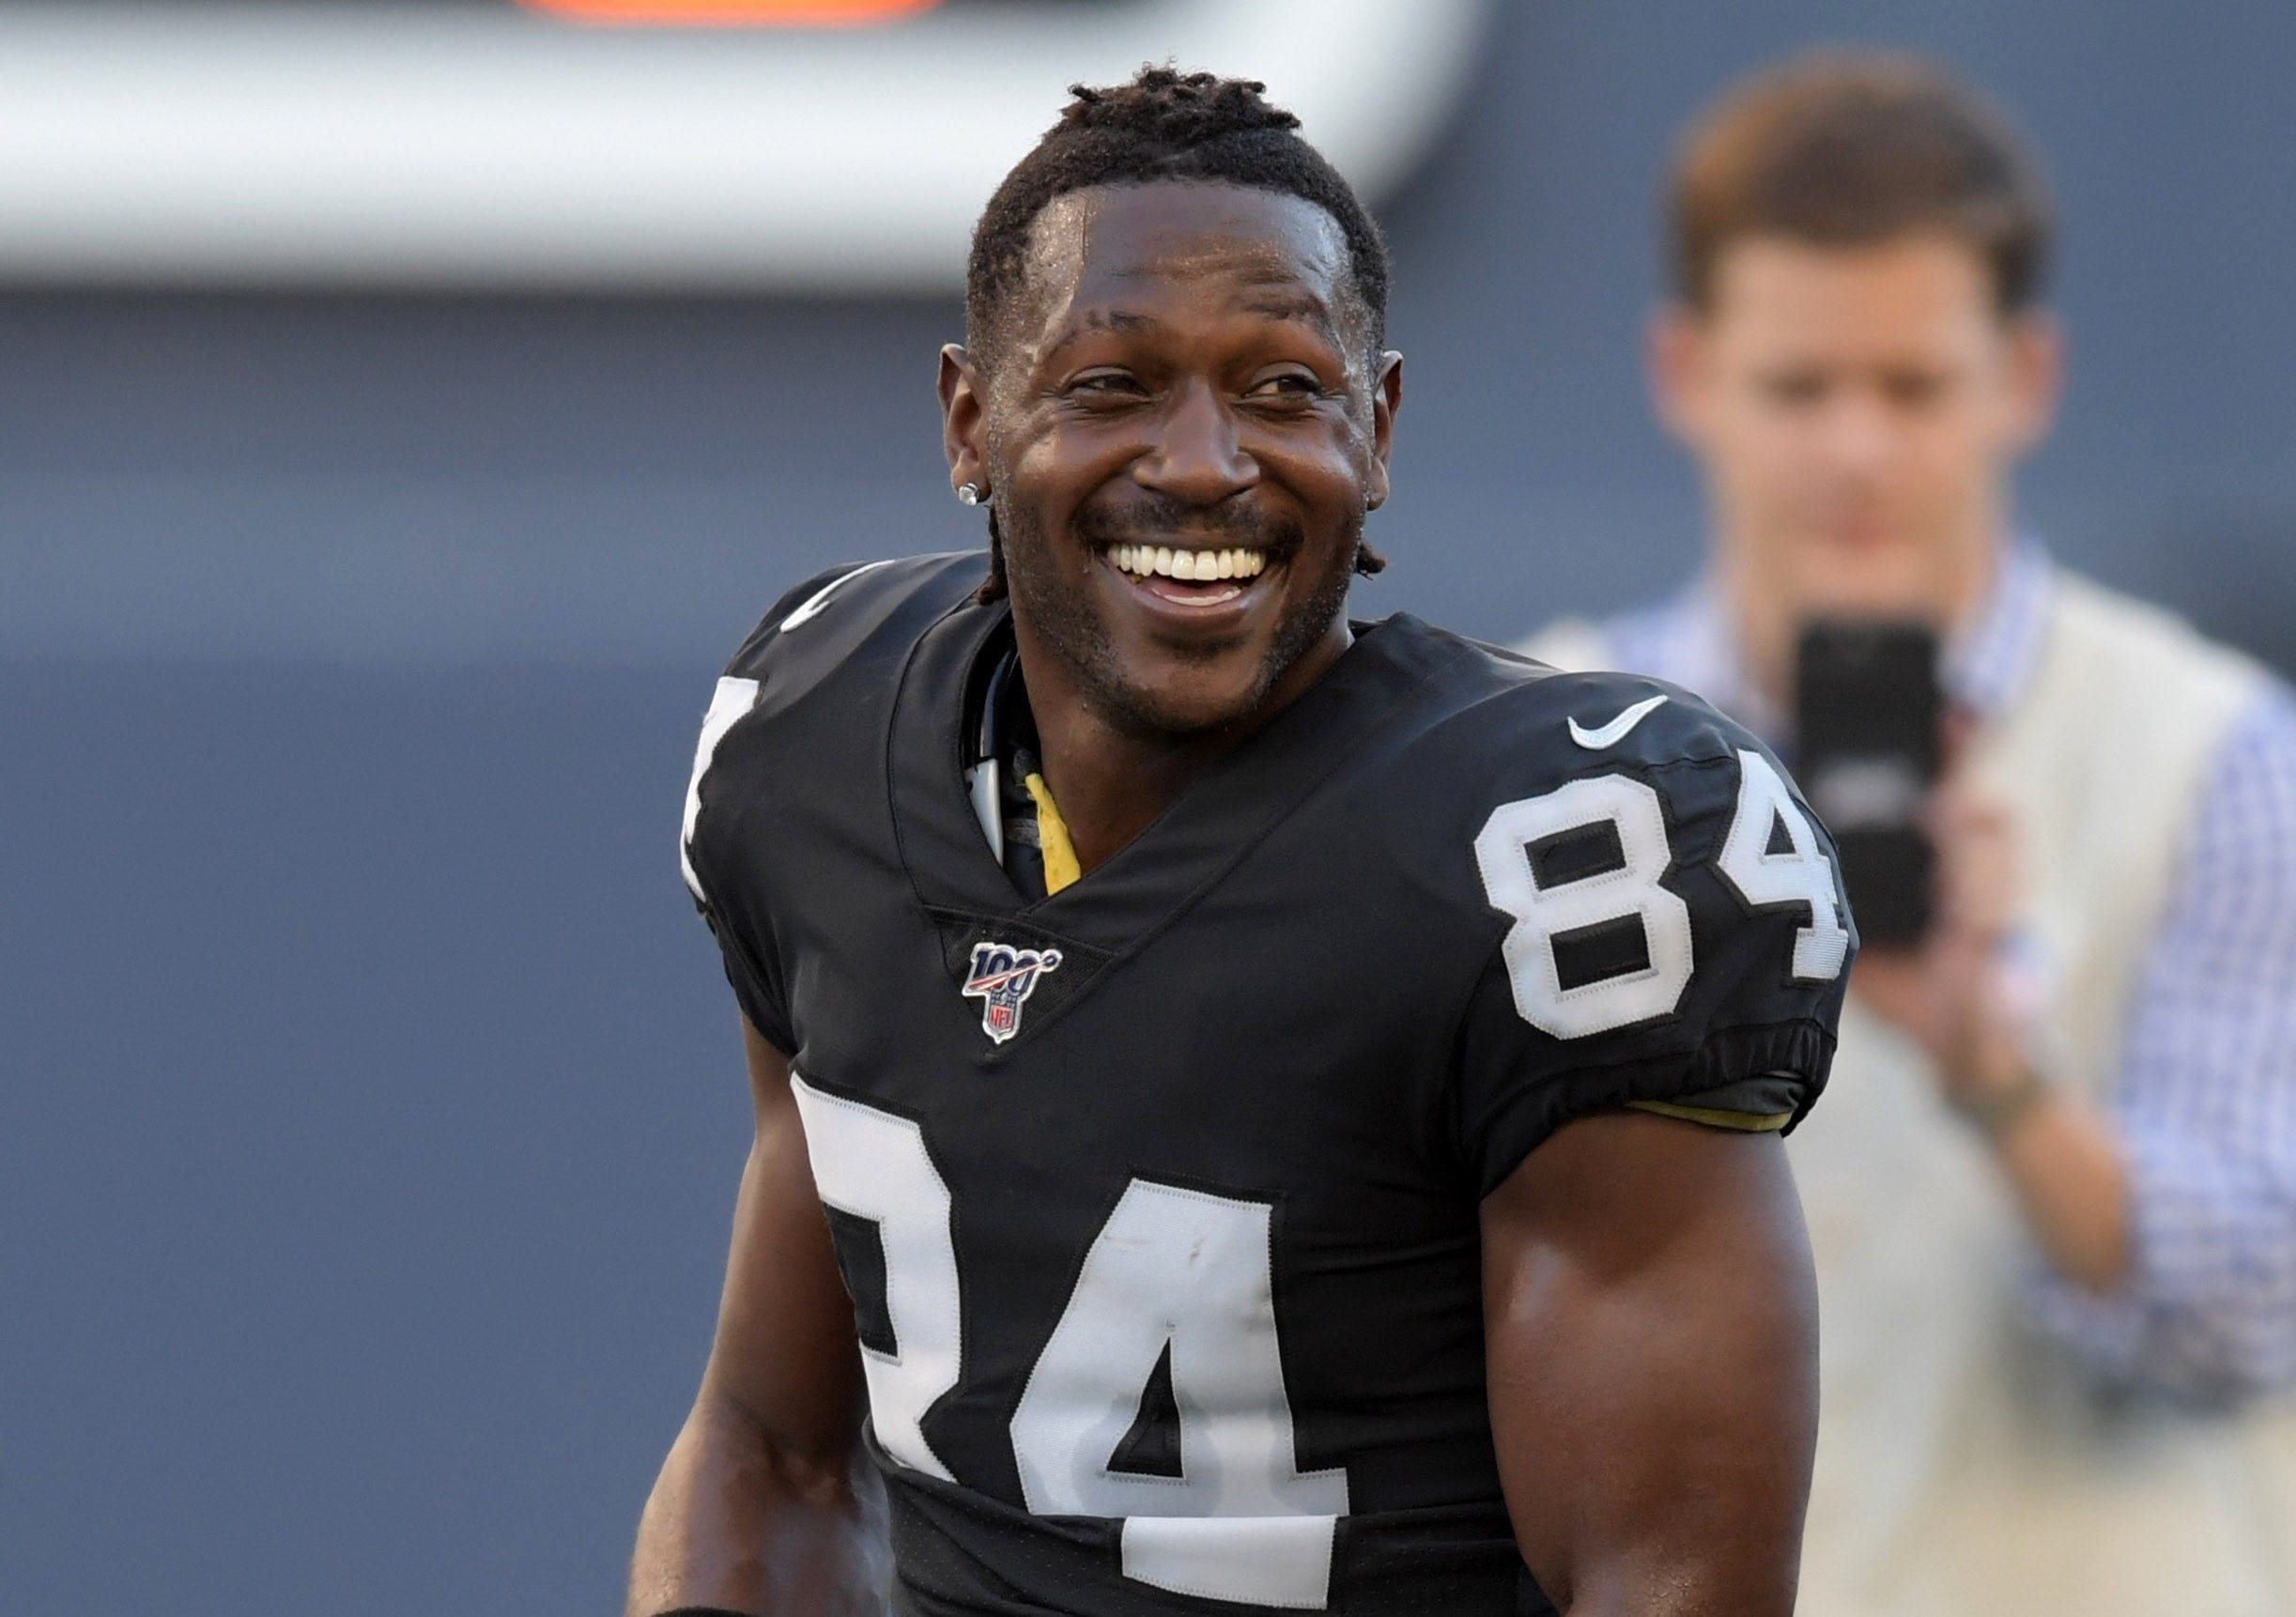 NFL star Antonio Brown accused of raping a former trainer